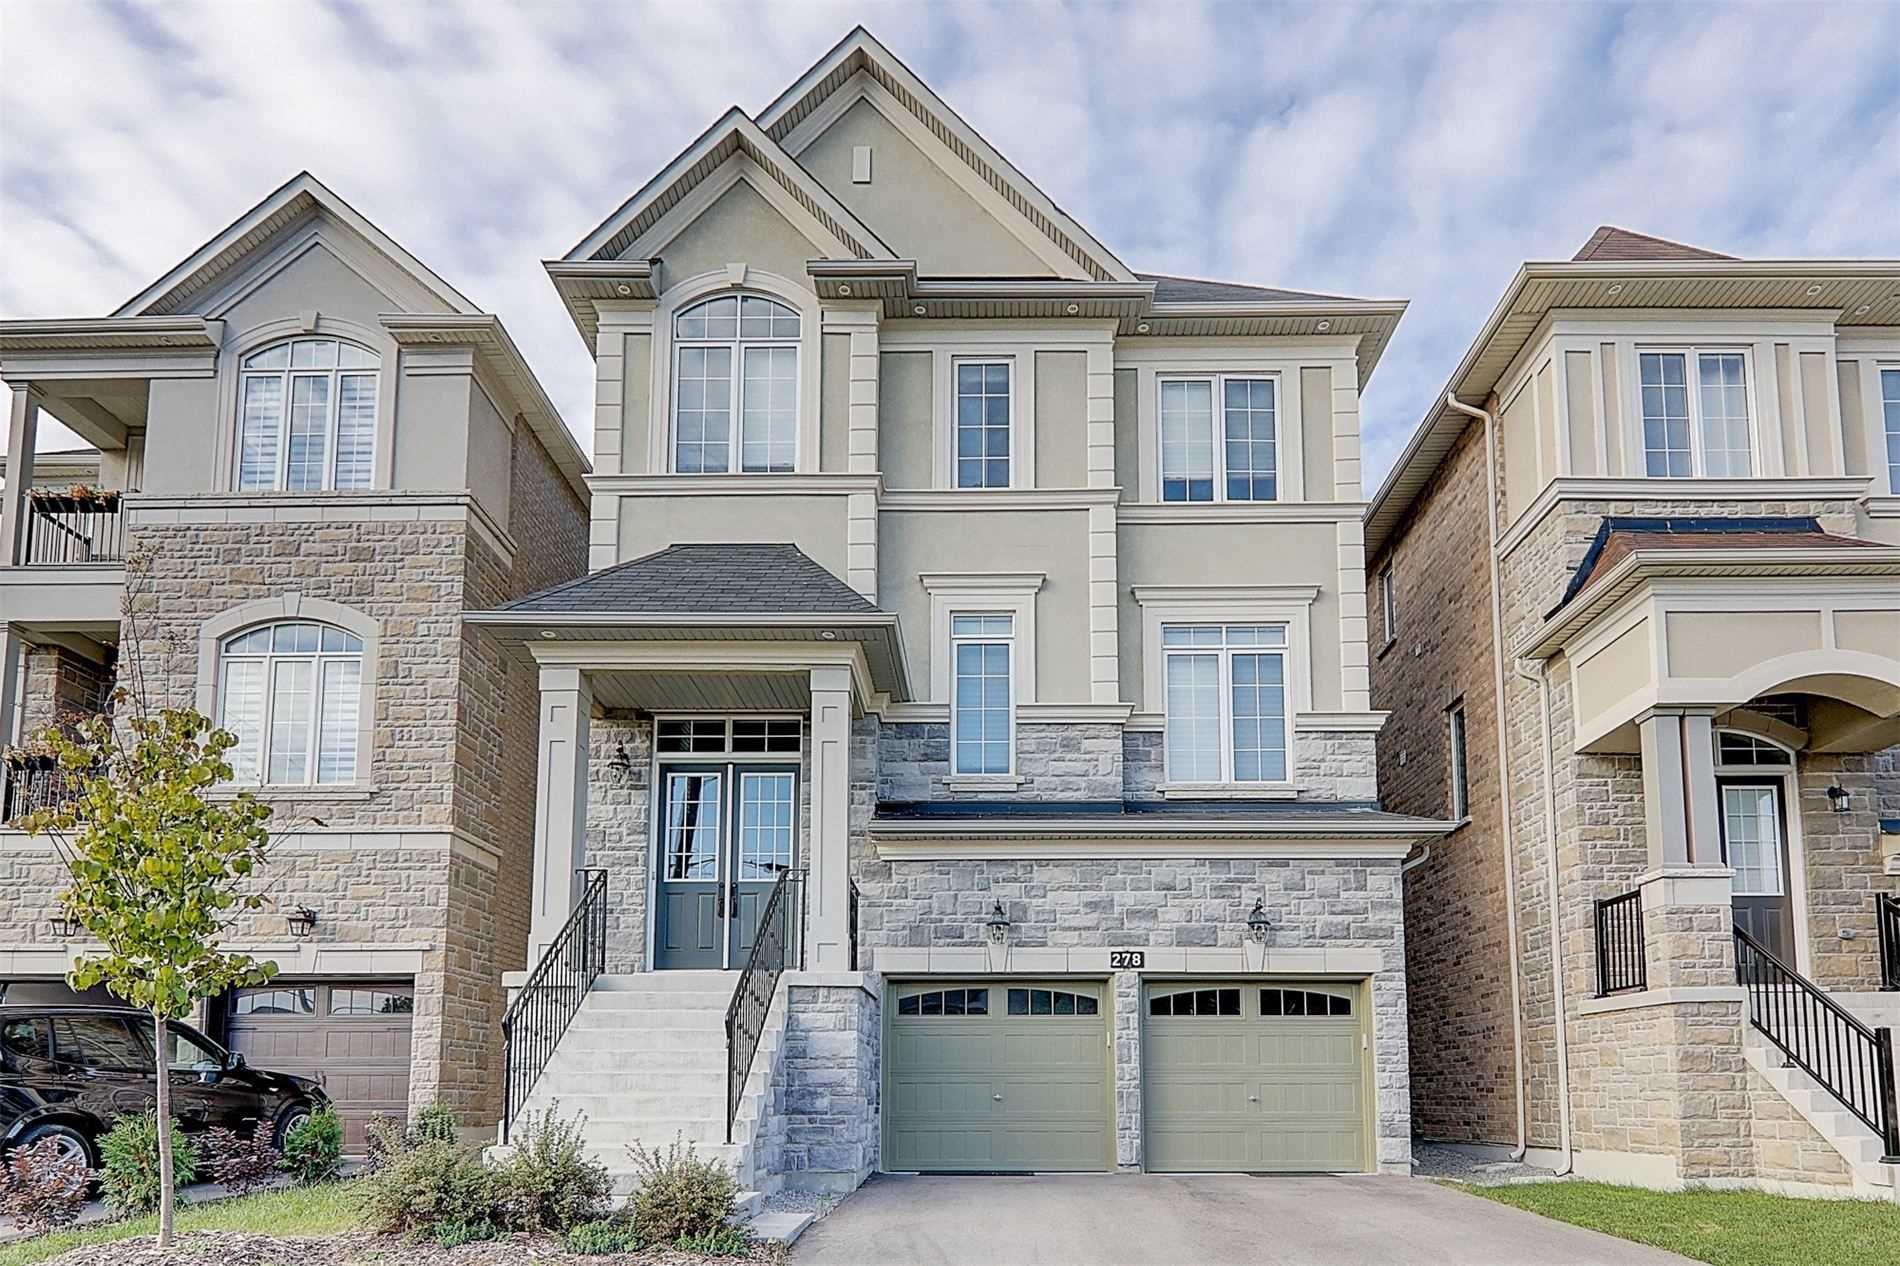 pictures of 278 Oxford St, Richmond Hill L4C7V8